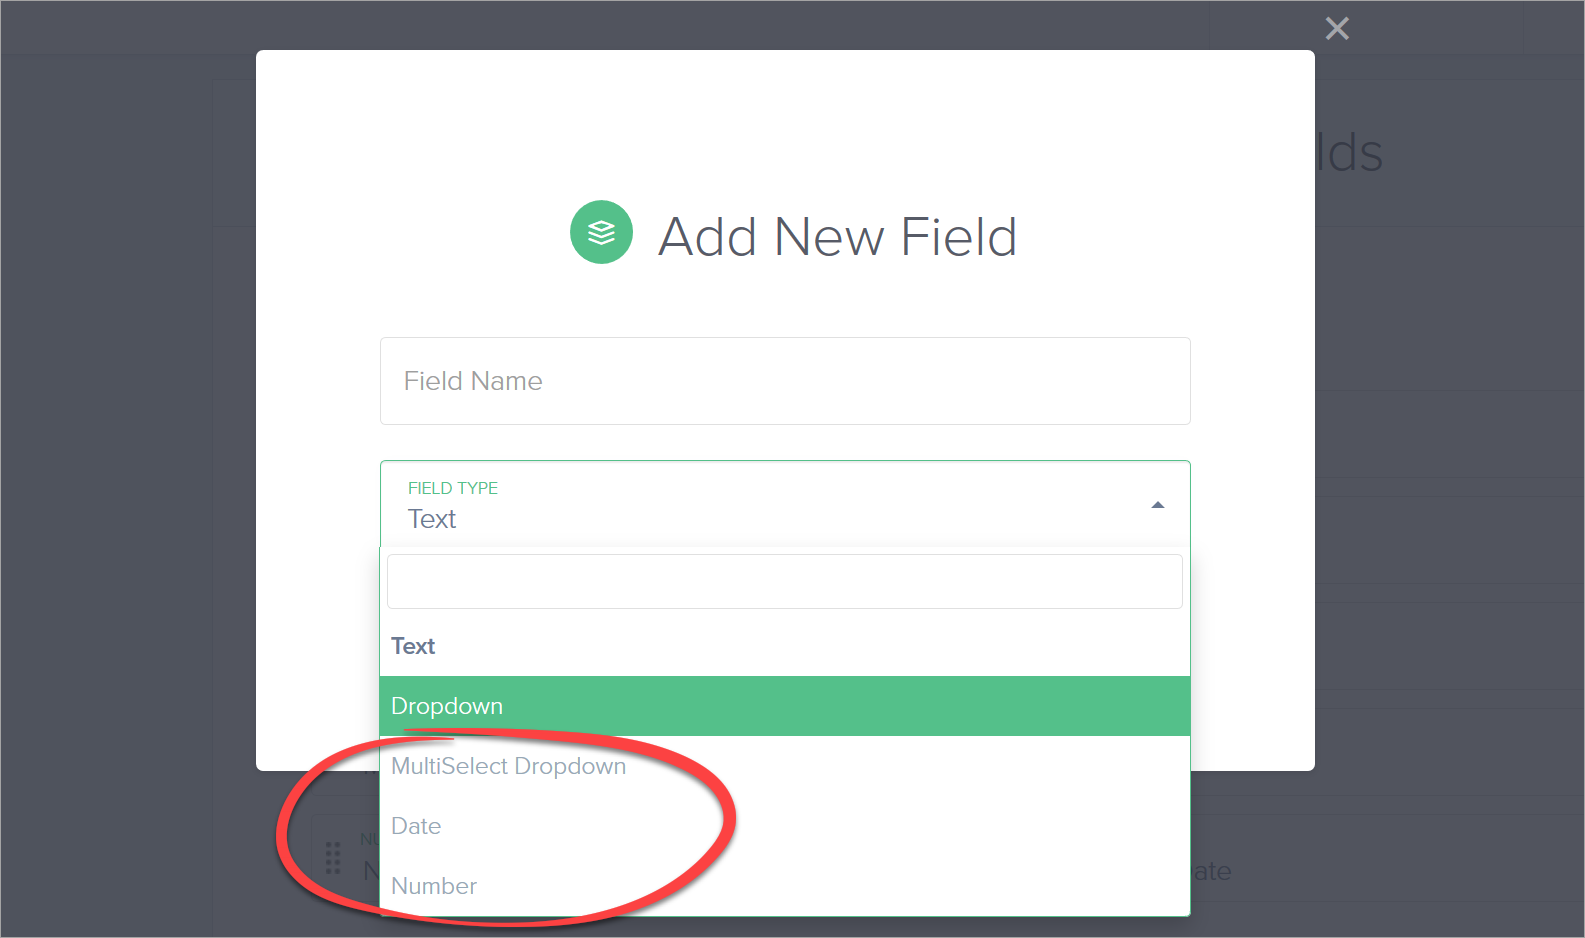 Additional Custom Fields